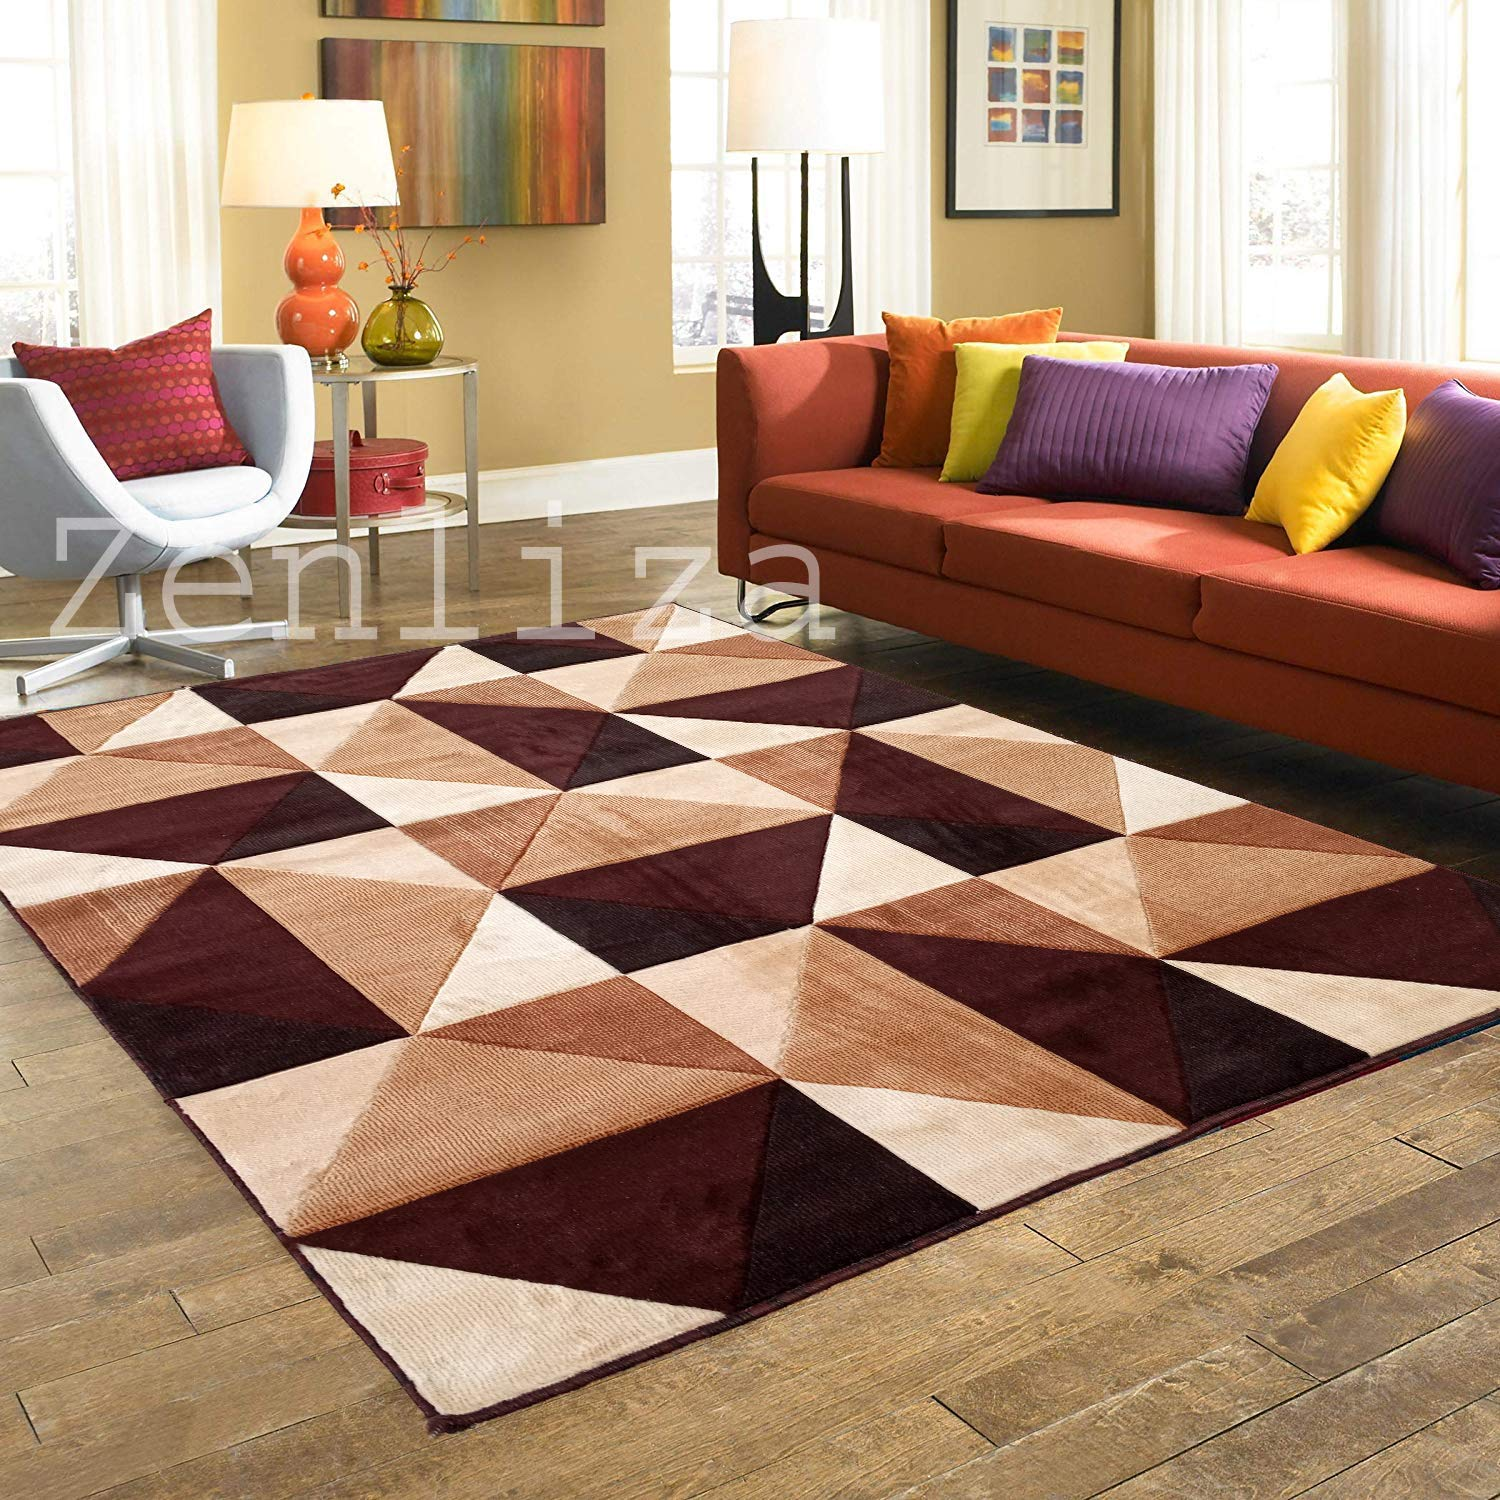 Buy Zenliza Modern Carpet For Living Room Brown Polyester 6 X 8 Feet Online At Low Prices In India Amazon In